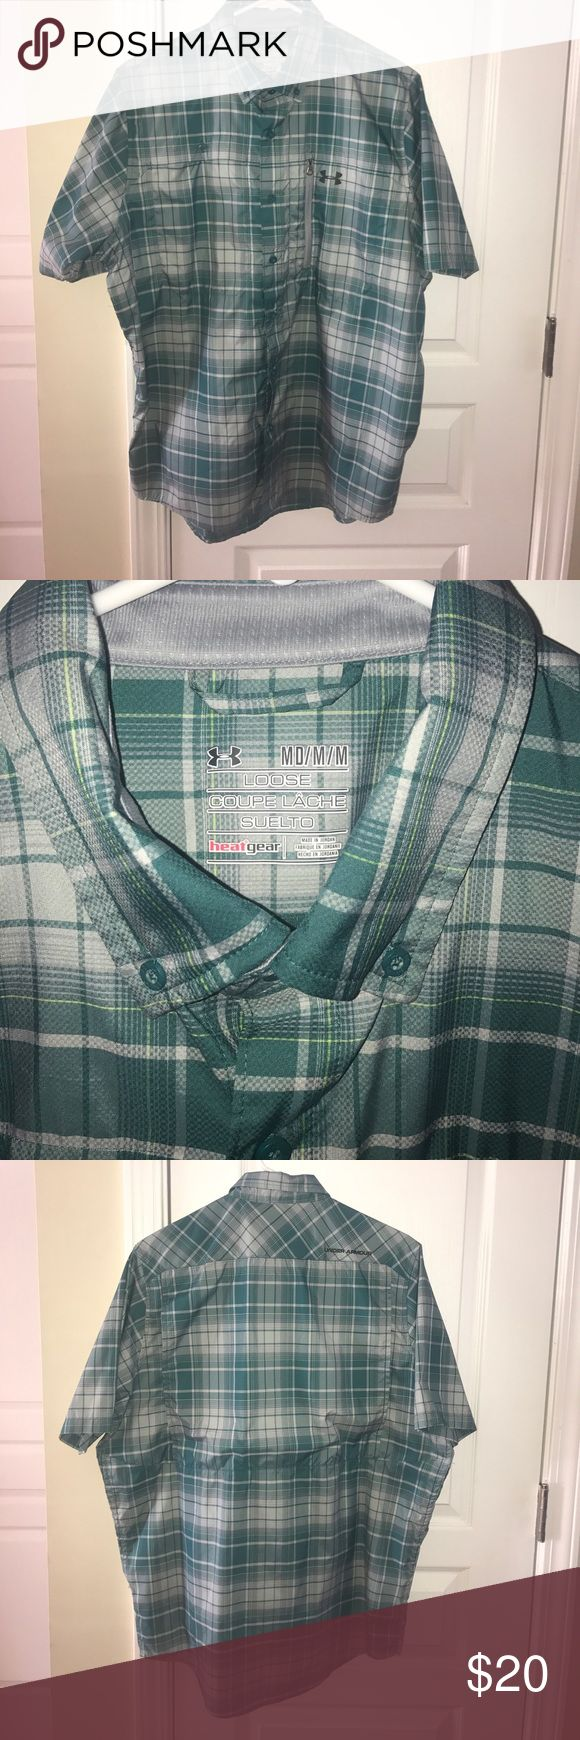 Under Armour men's shirt Never worn - Under Armour short sleeve button down! Looks great - perfect for warmer weather! Under Armour Shirts Casual Button Down Shirts